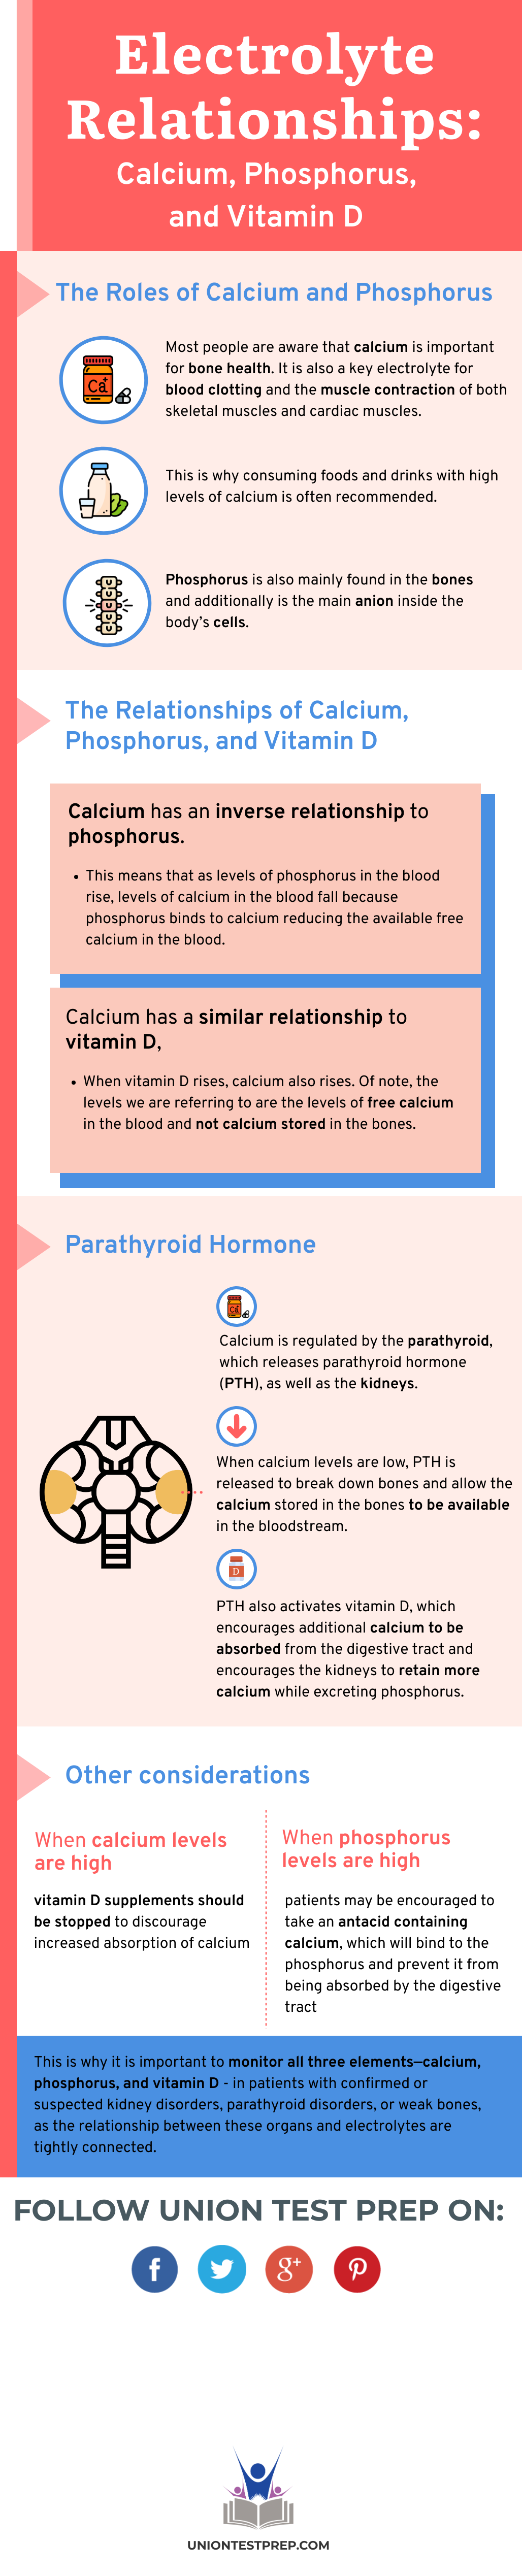 Electrolyte Relationships: Calcium, Phosphorus, and Vitamin D